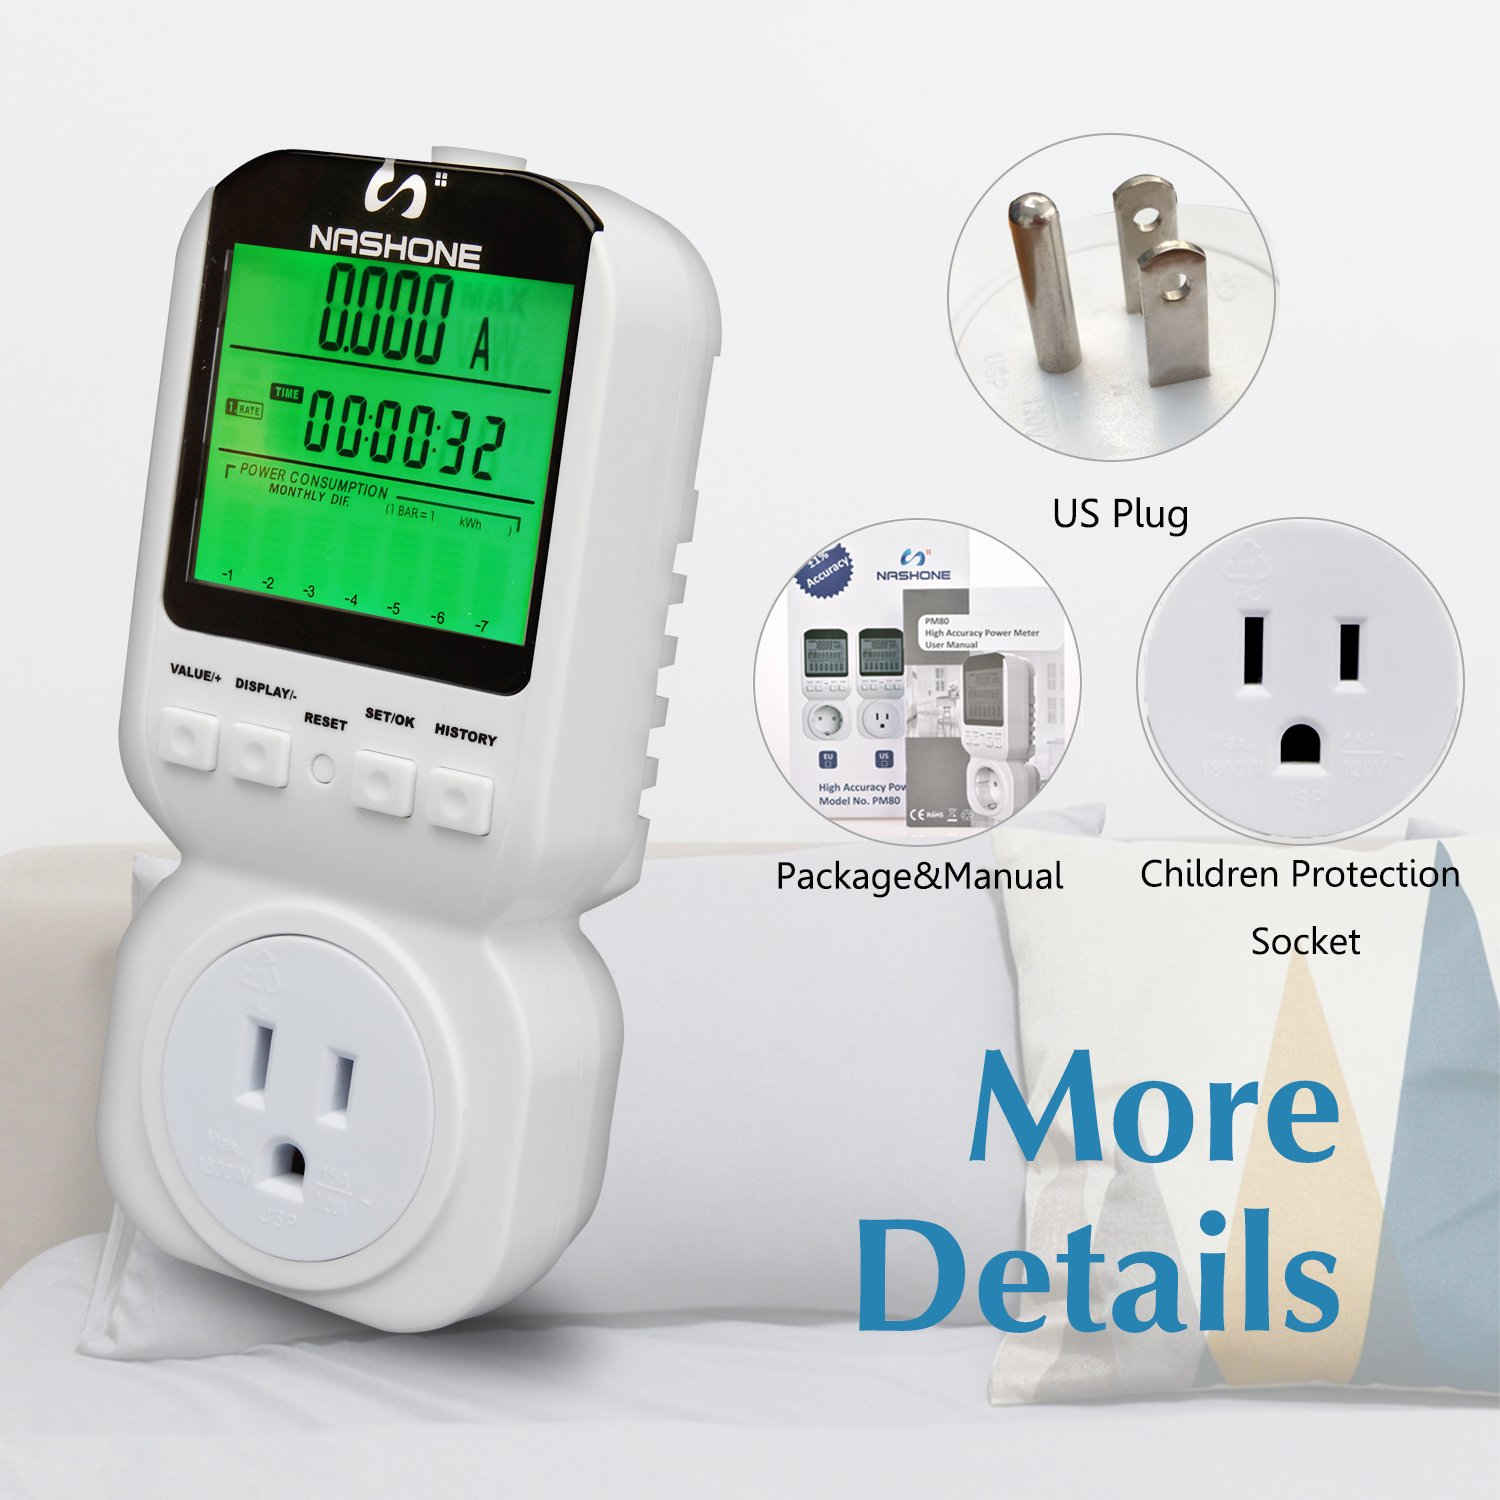 Nashone Digital Electric Power Meter, Smart Home Energy Consumption Monitor,Wall Plugged with Timer LCD Display Overload Alarm by Nashone (Image #7)